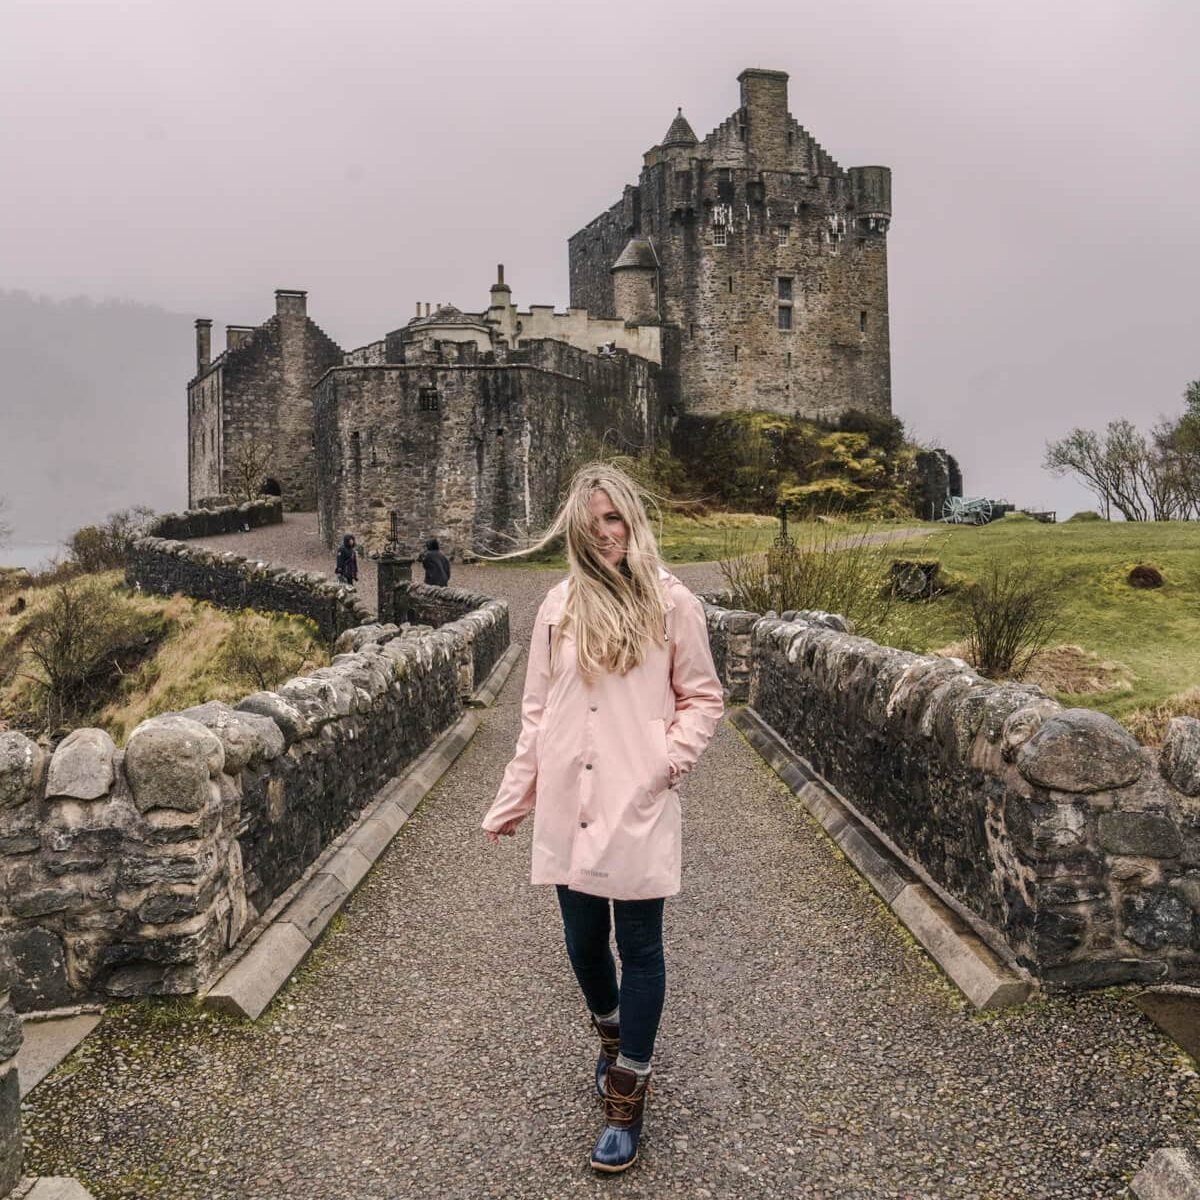 Scotland's marketing campaign invites travellers back to their beautiful country